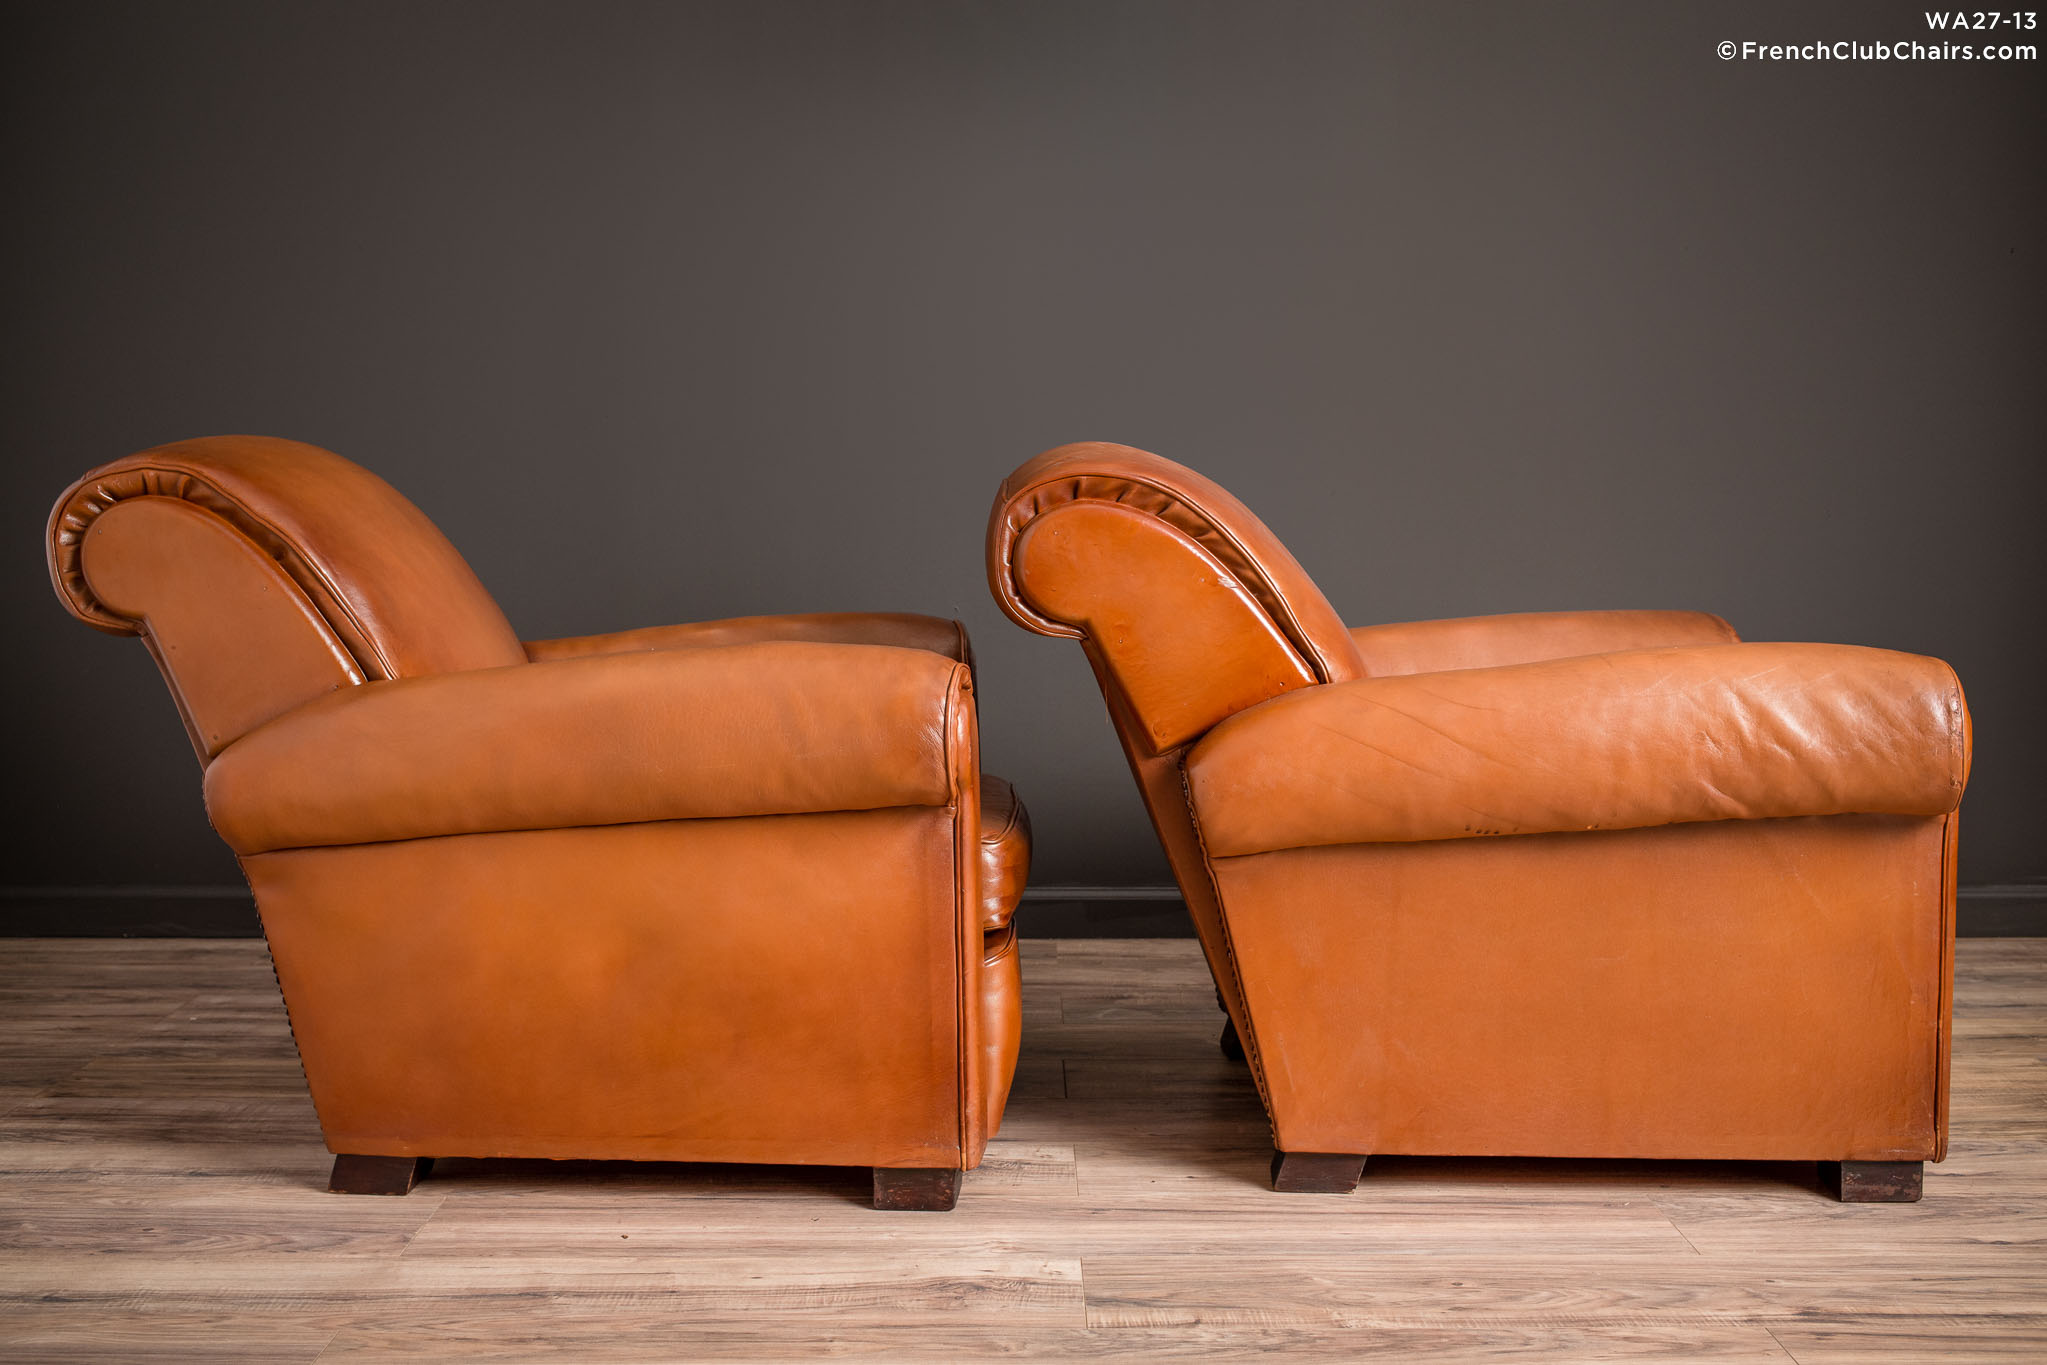 WA_27-13_La_Ministre_Rollback_Lounge_Pair_R_3RT-v01-williams-antiks-leather-french-club-chair-wa_fcccom